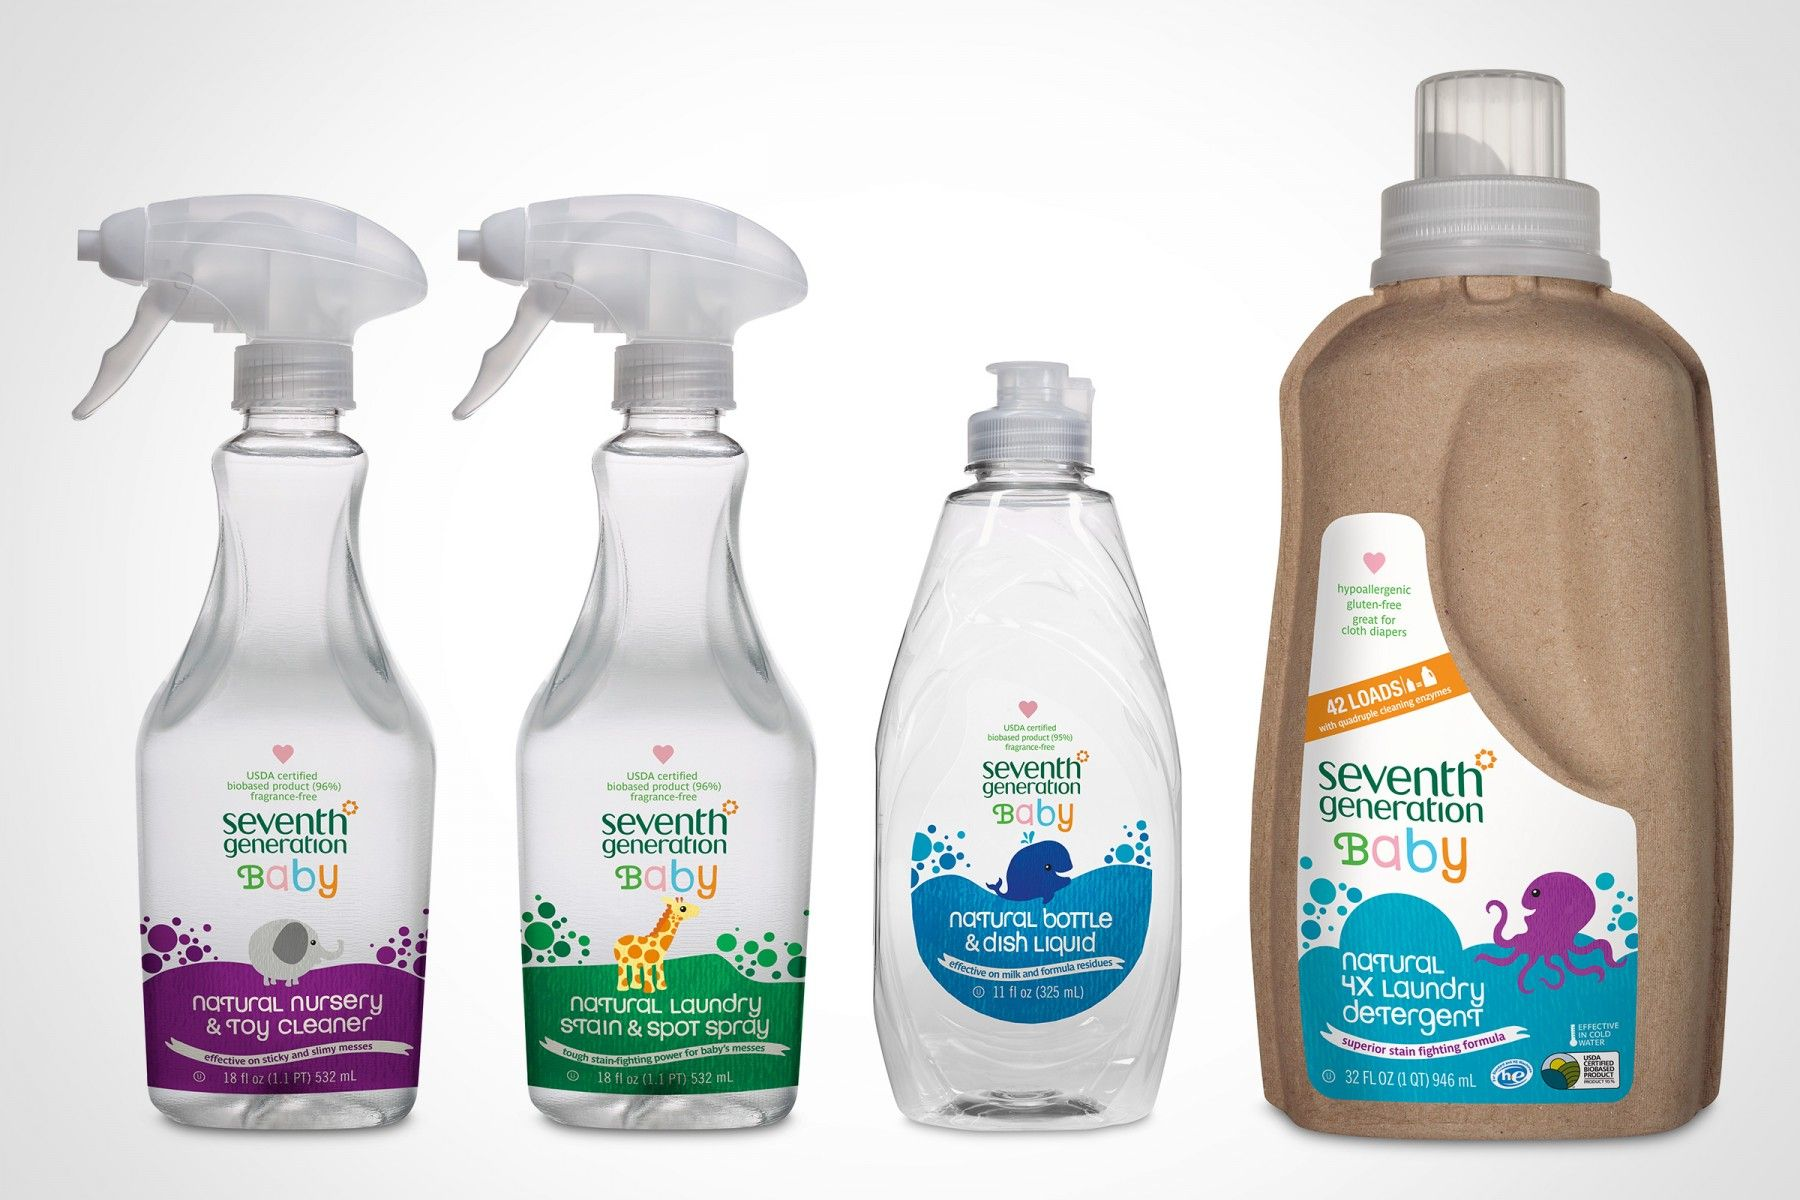 Seventh Generation Baby Baby Products Packaging Bottle Design